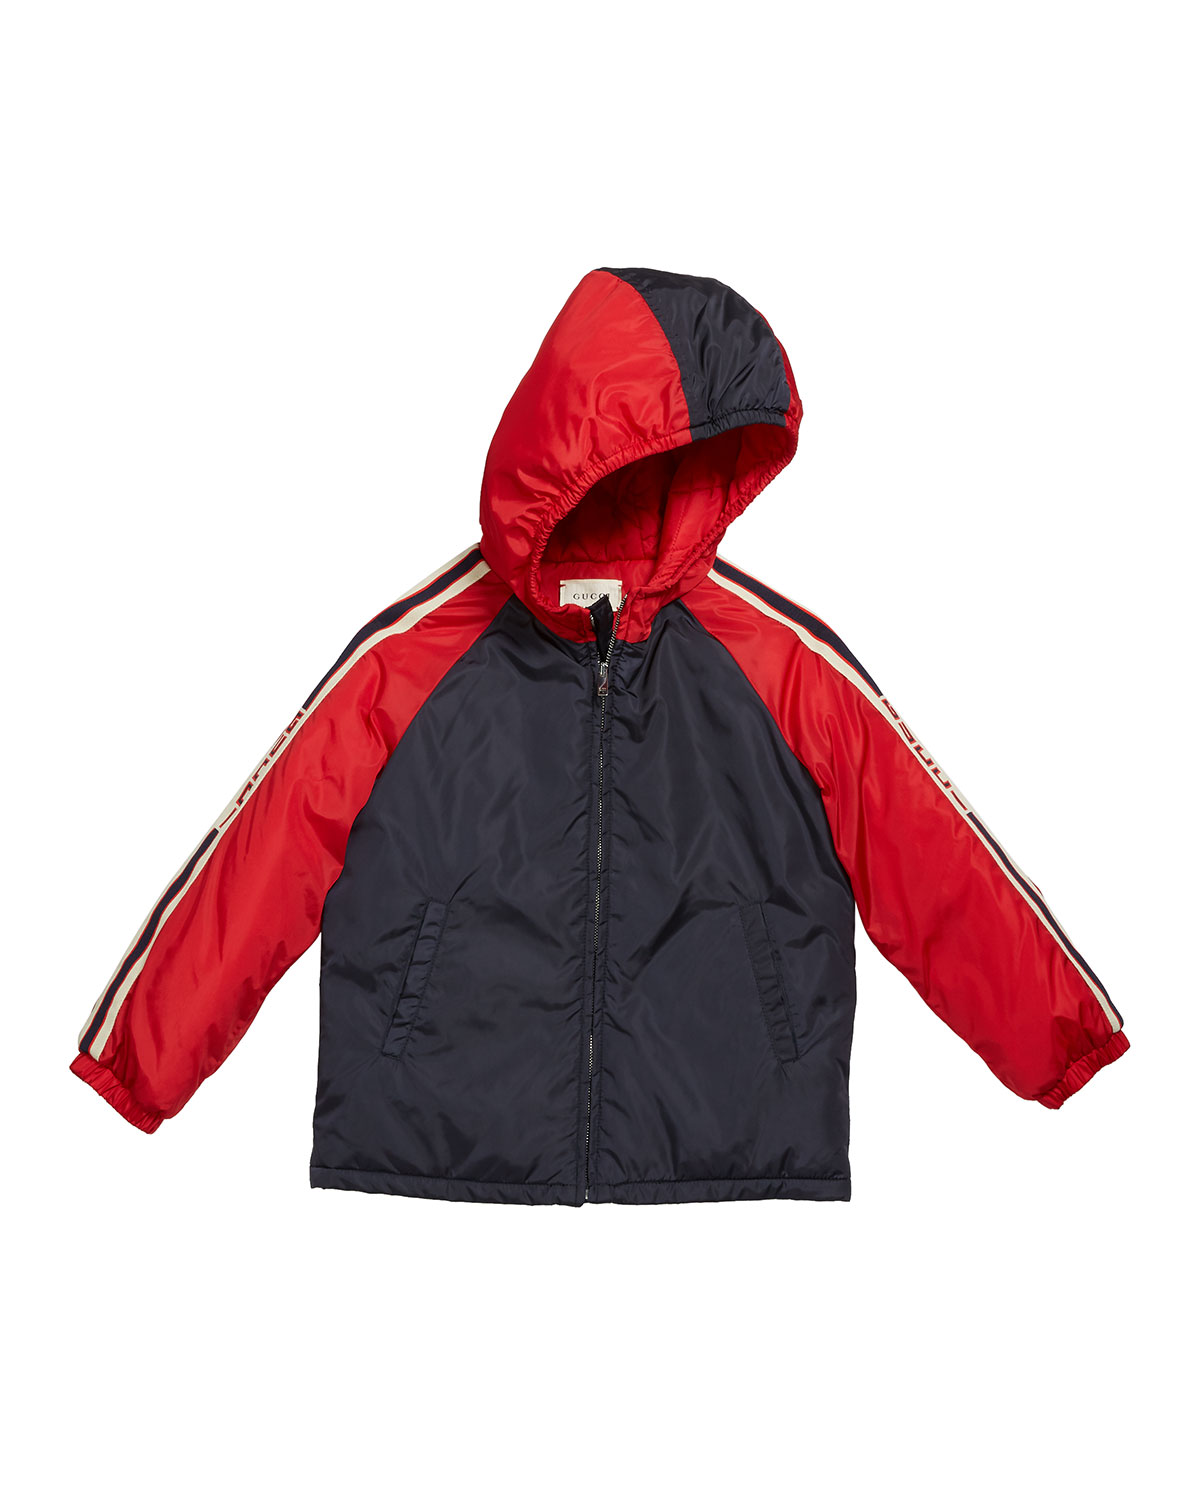 Gucci Boy's Colorblock Hooded Jacket w/ Logo Taping, Size 12-36 Months